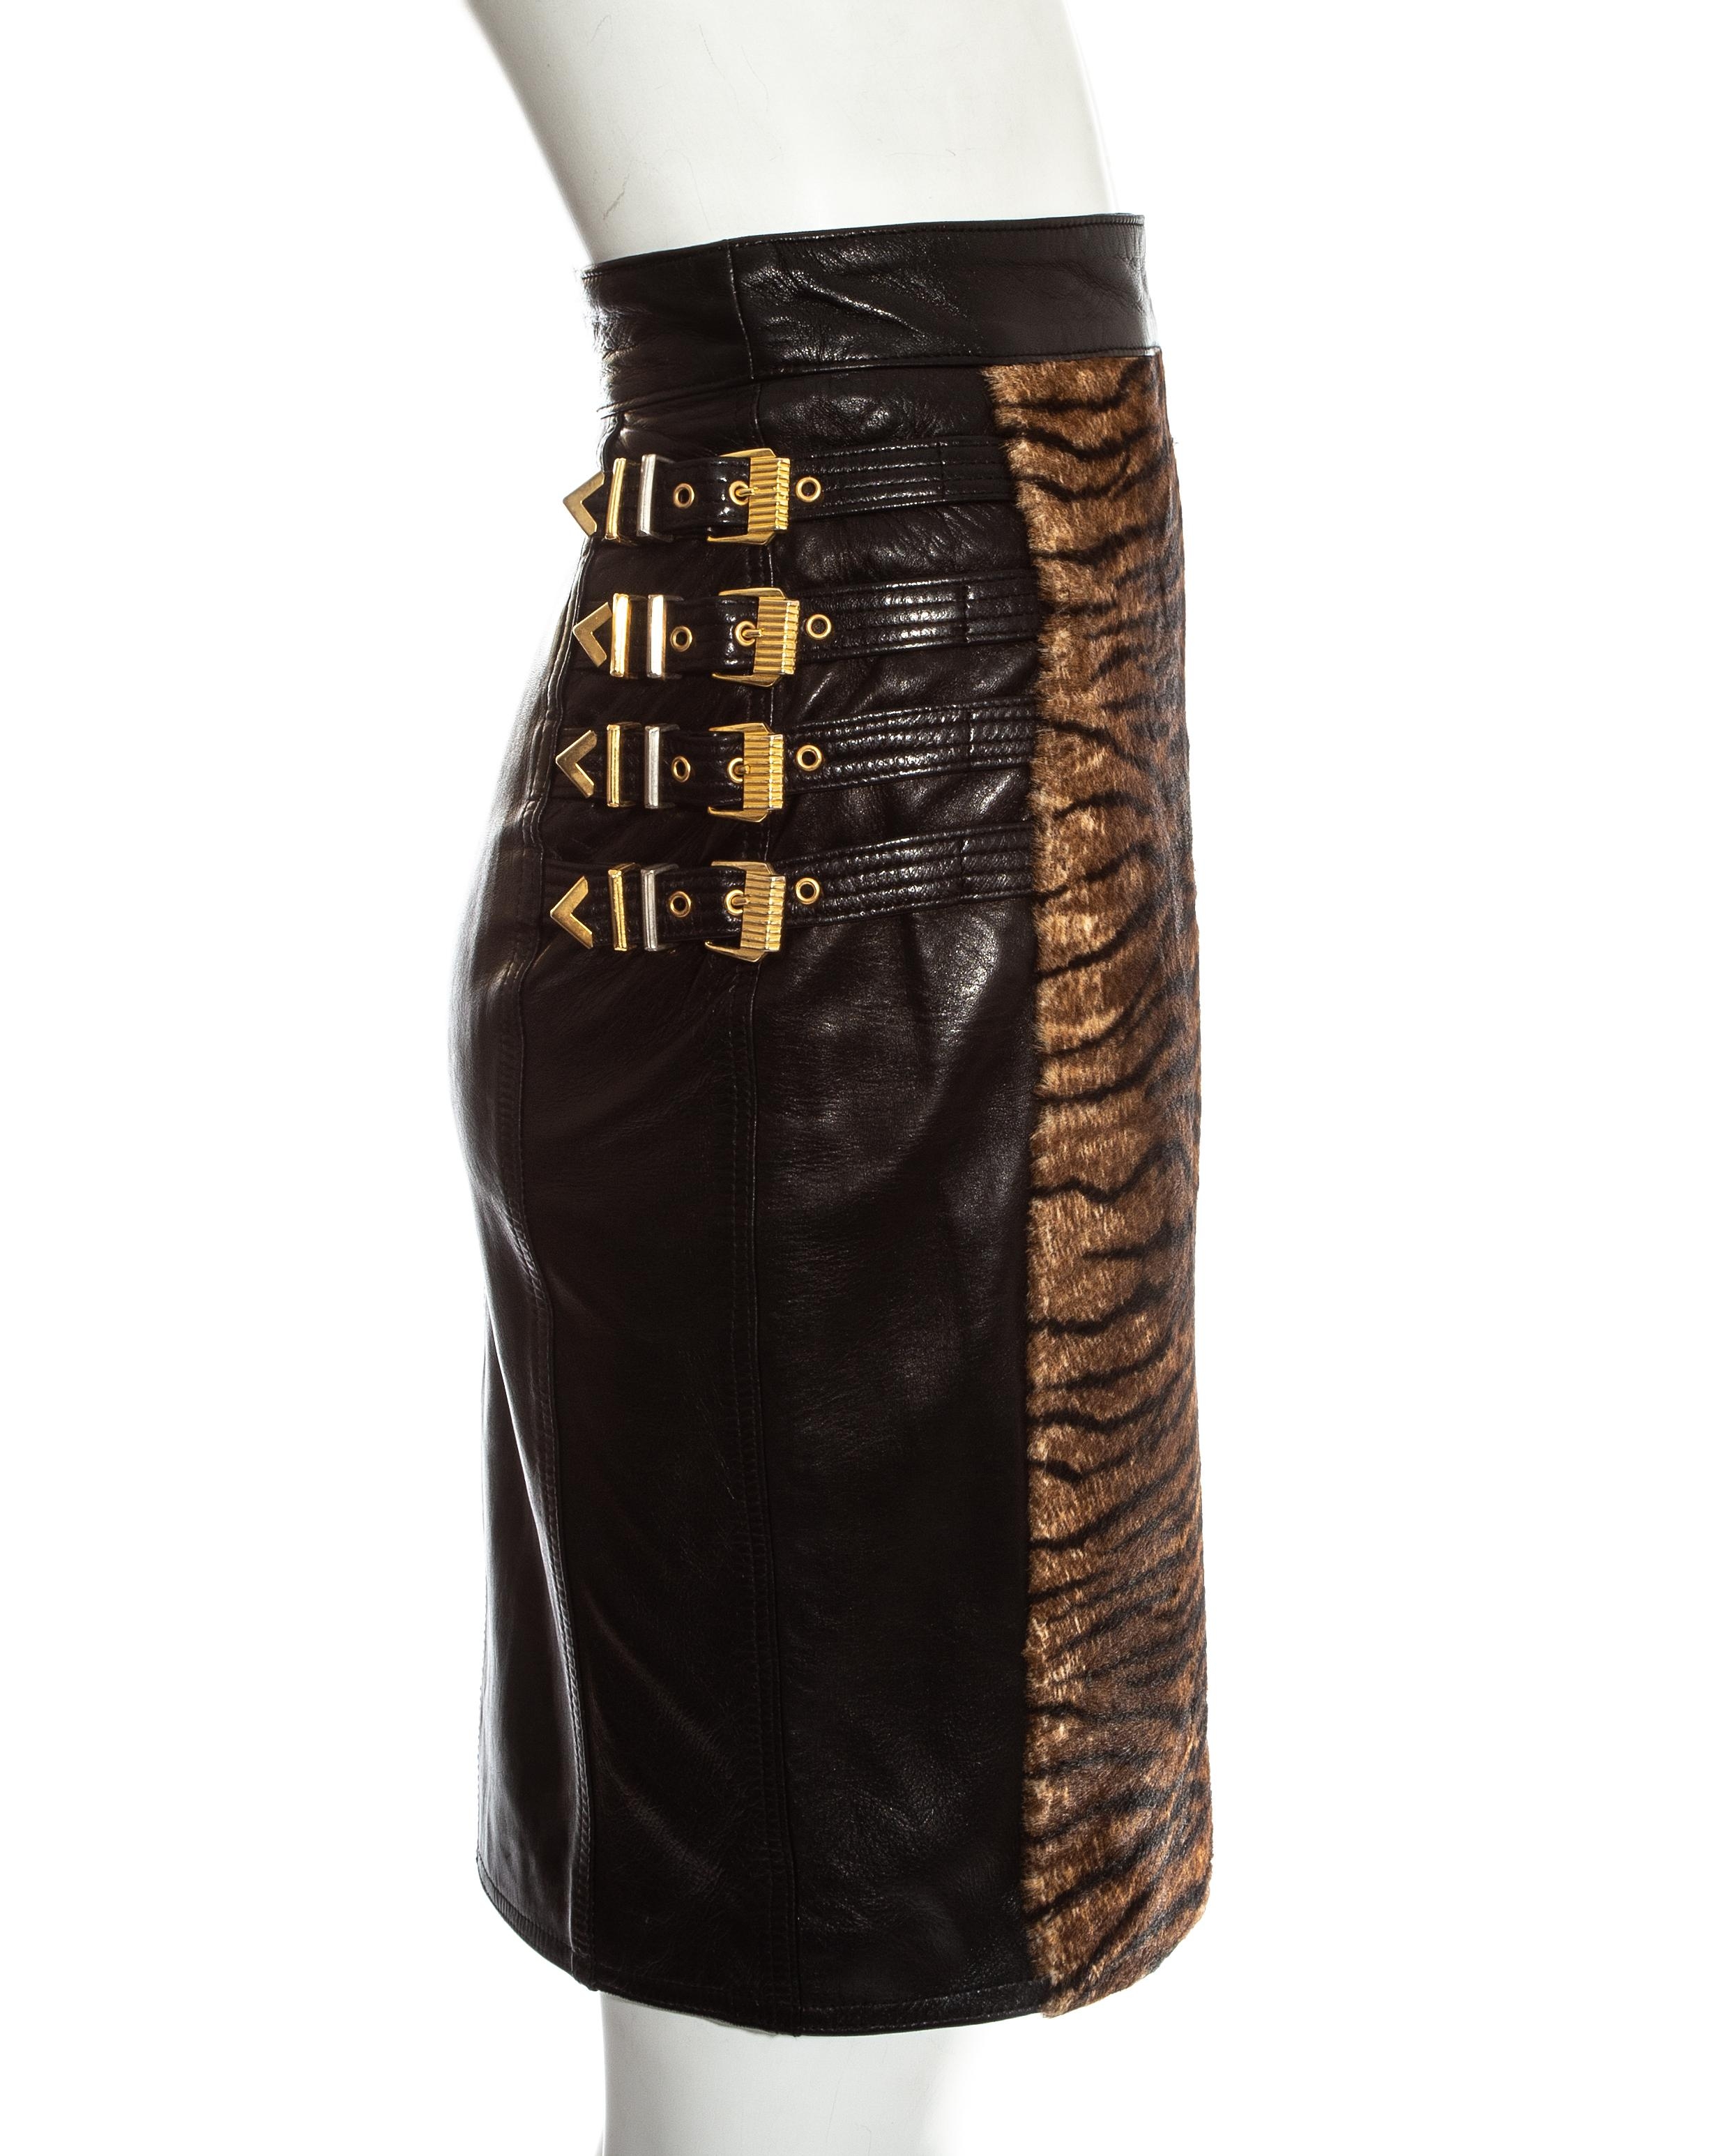 5bf4a1bdff Gianni Versace black leather gold buckled skirt with animal print, fw 1994